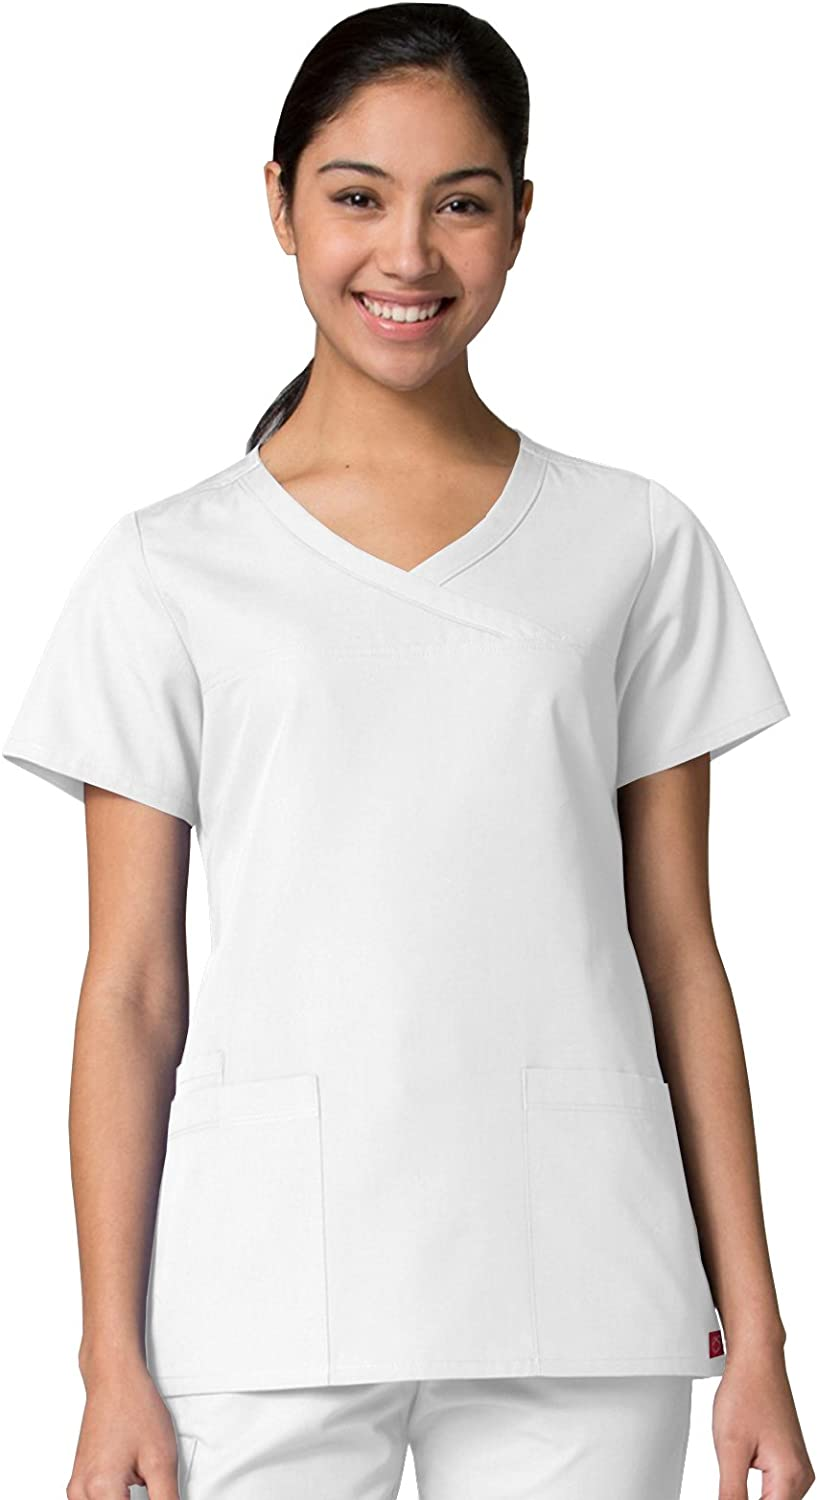 Red Panda Maevn Women's Curved Mock Wrap Top(White, Small)